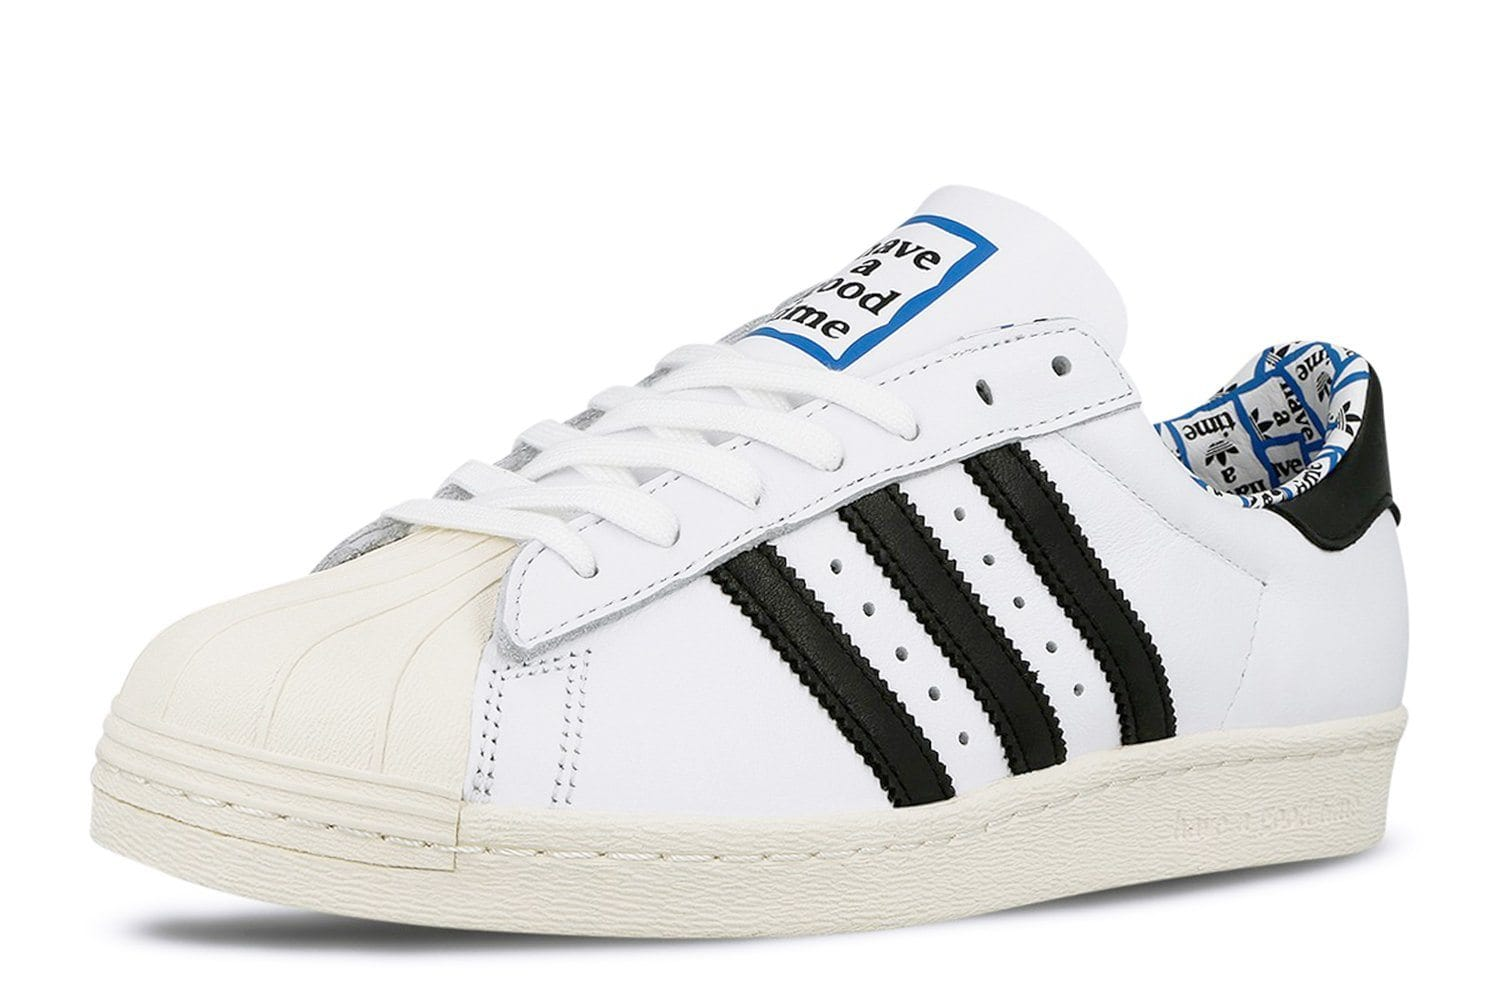 SUPERSTAR 80S HAGT - G54786 MENS FOOTWEAR ADIDAS